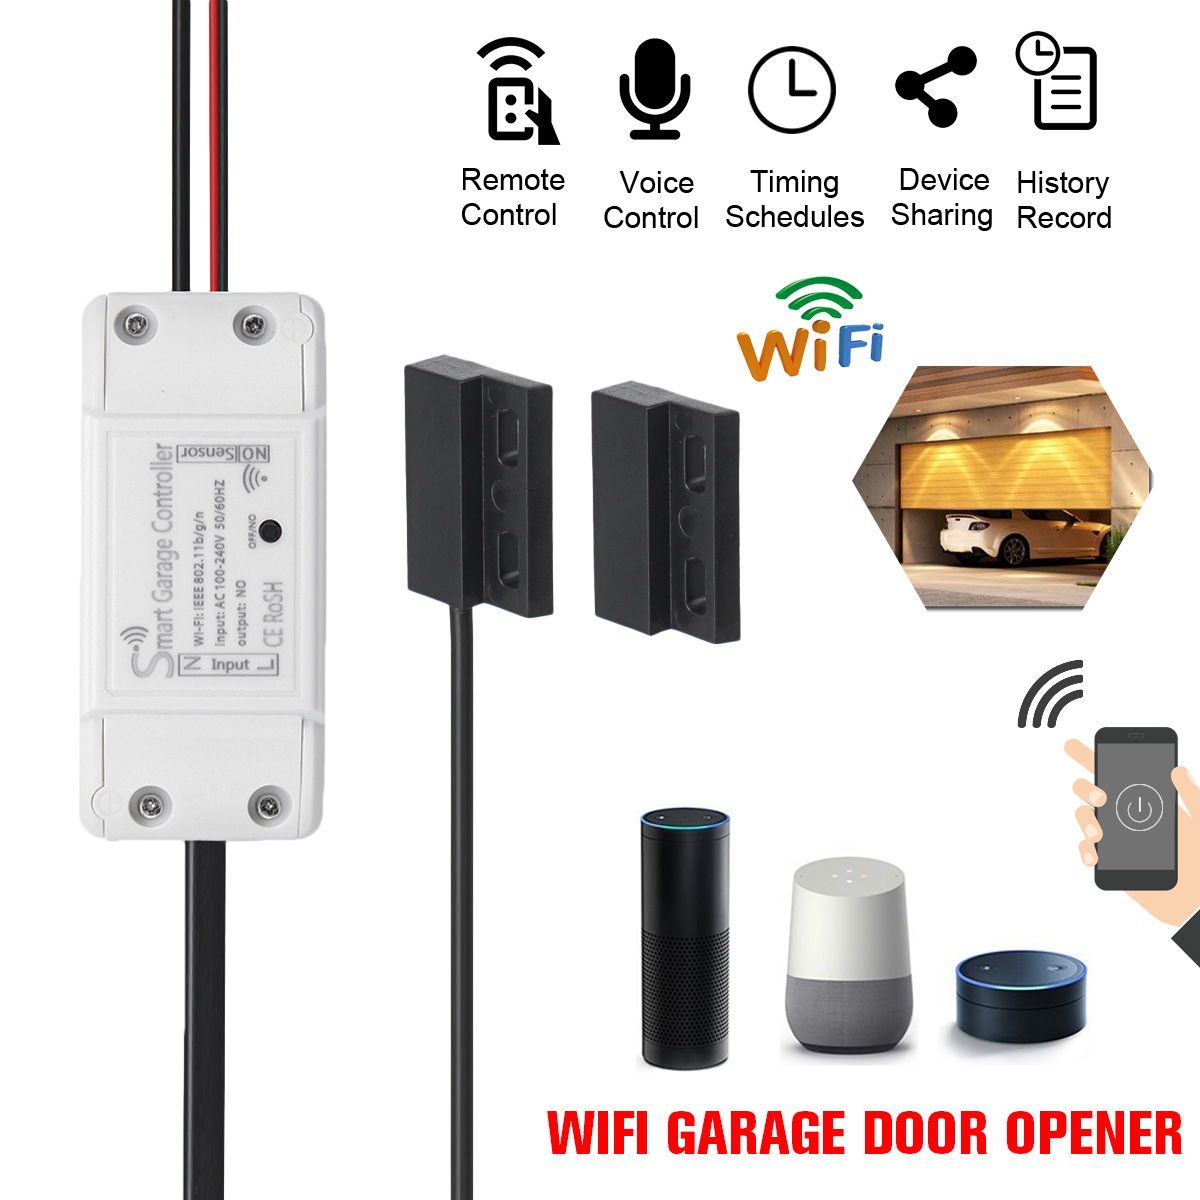 NEW WiFi Switch Smart Garage Door Opener Controller with Alexa Google Home and IFTT Smart Life/Tuya APP controlNEW WiFi Switch Smart Garage Door Opener Controller with Alexa Google Home and IFTT Smart Life/Tuya APP control